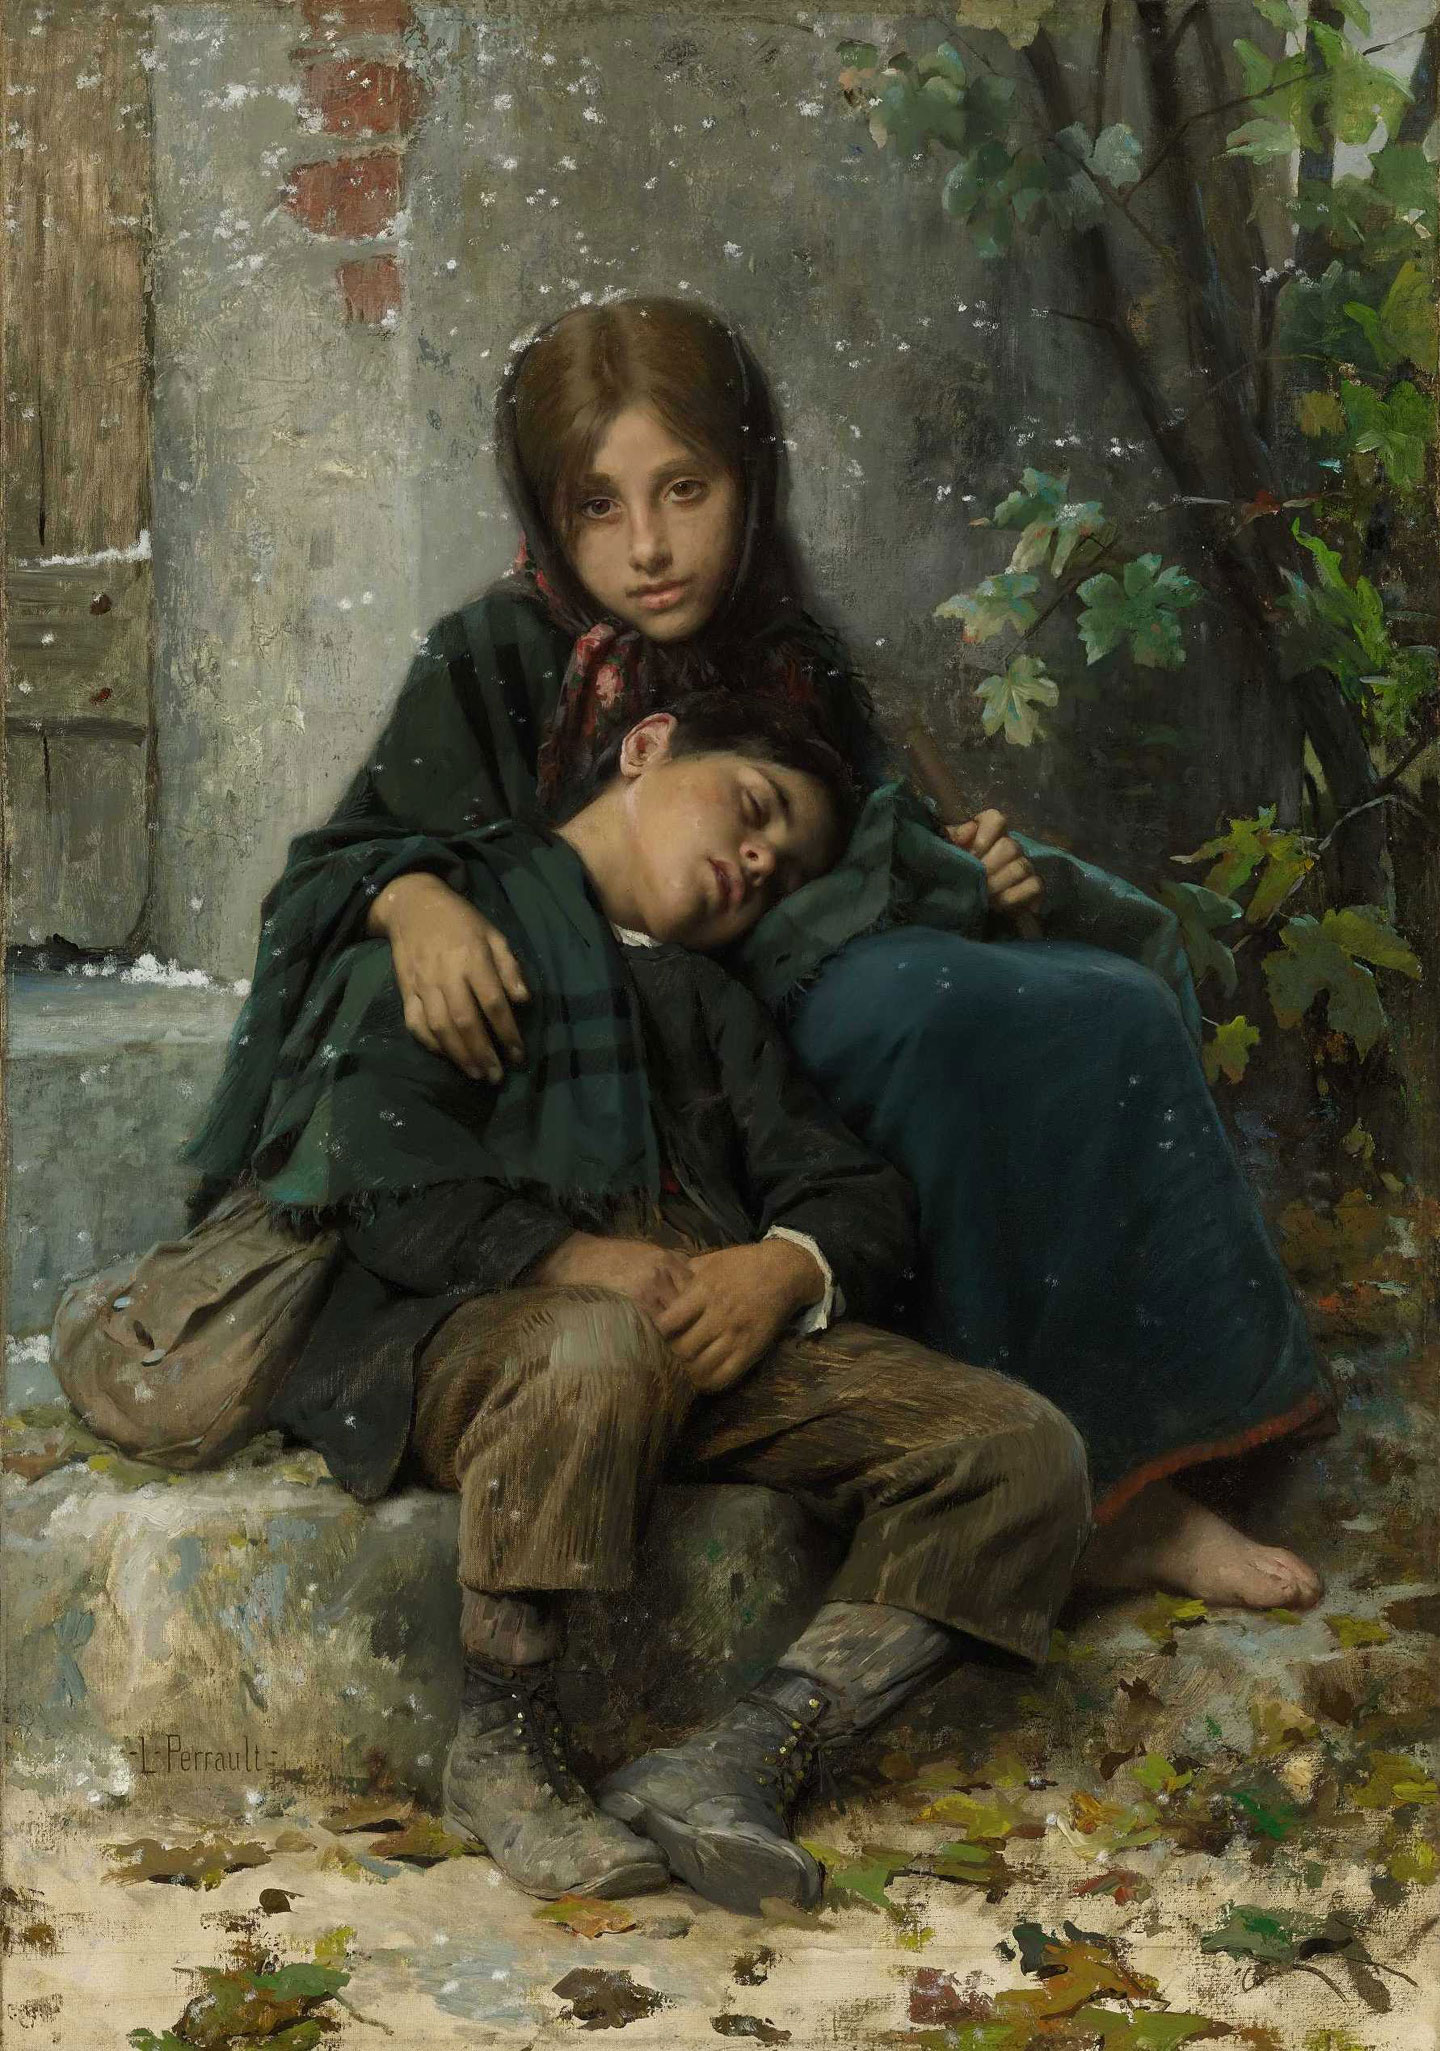 Out in the Cold :: Leon Bazile Perrault - Children's portrait in art and painting ôîòî